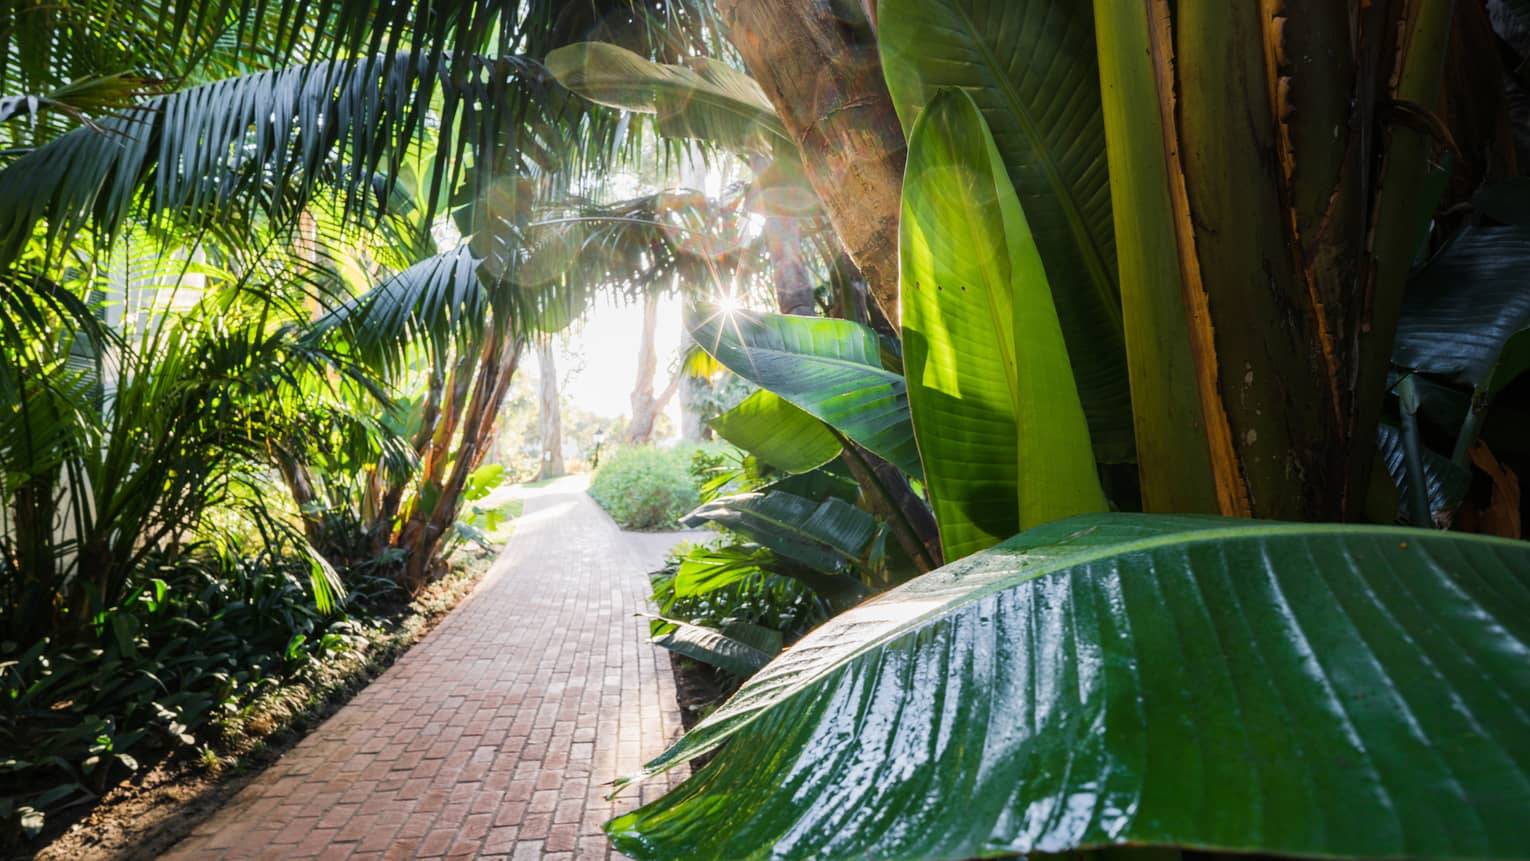 Large palm leaves over red brick path through sunny garden